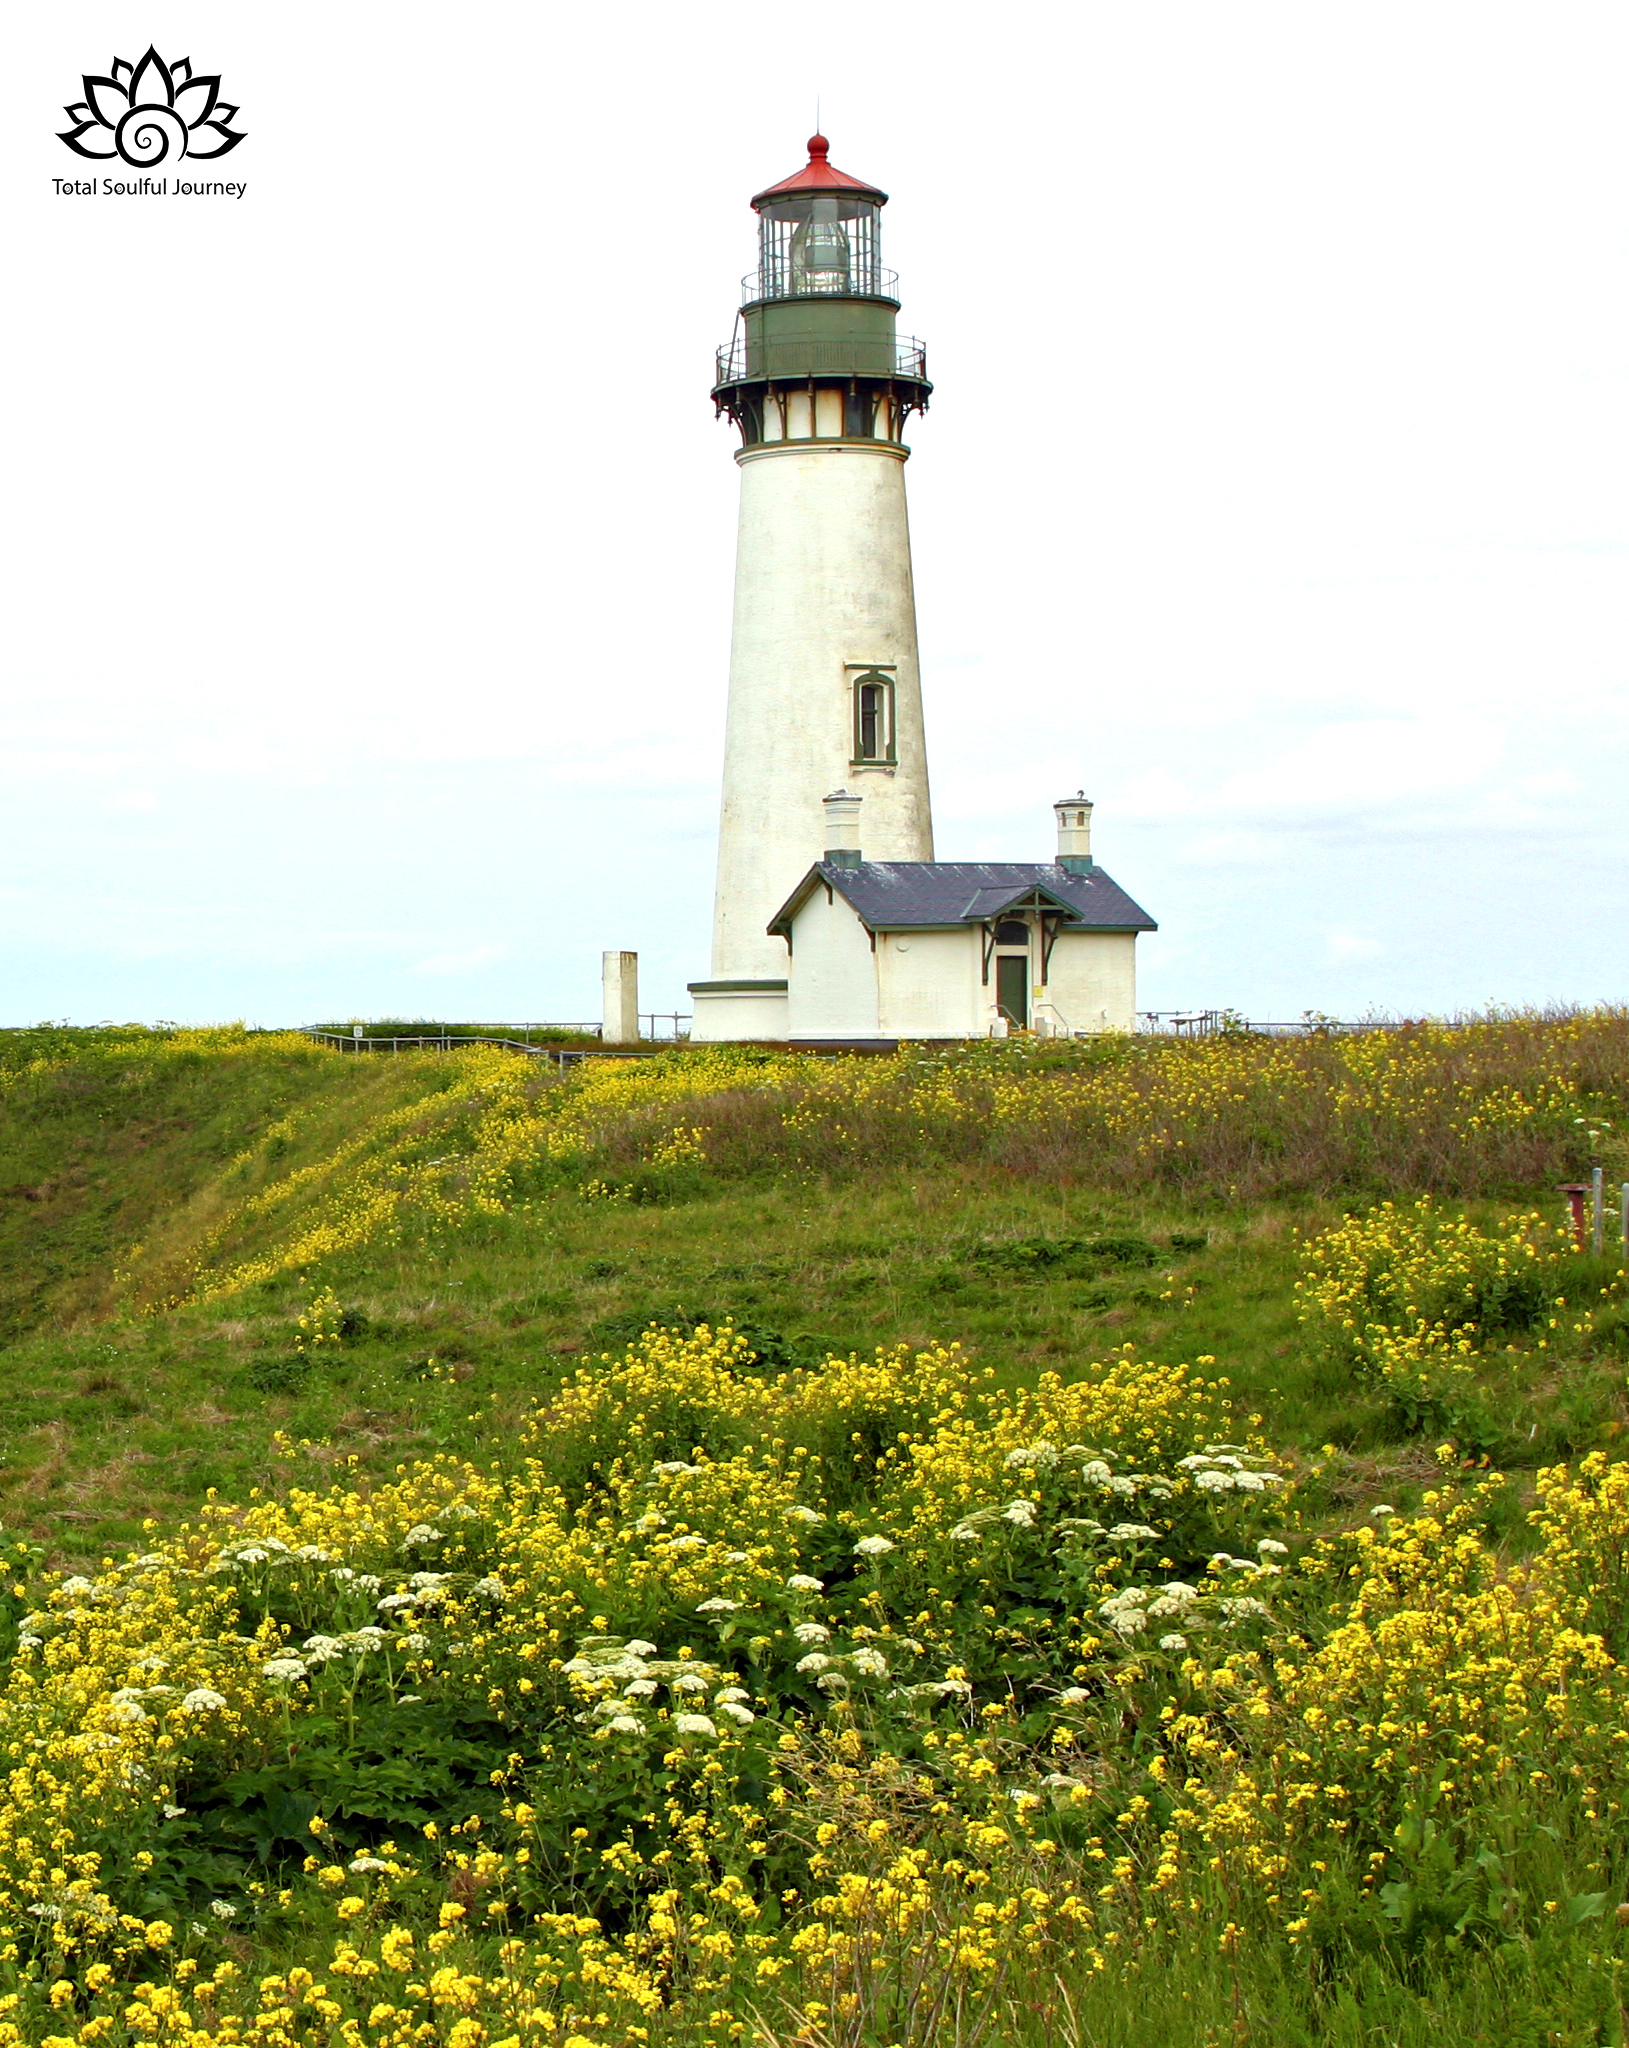 Let your Passion be the lighthouse that guides you to your purpose in life. Photo by Paul Garrett